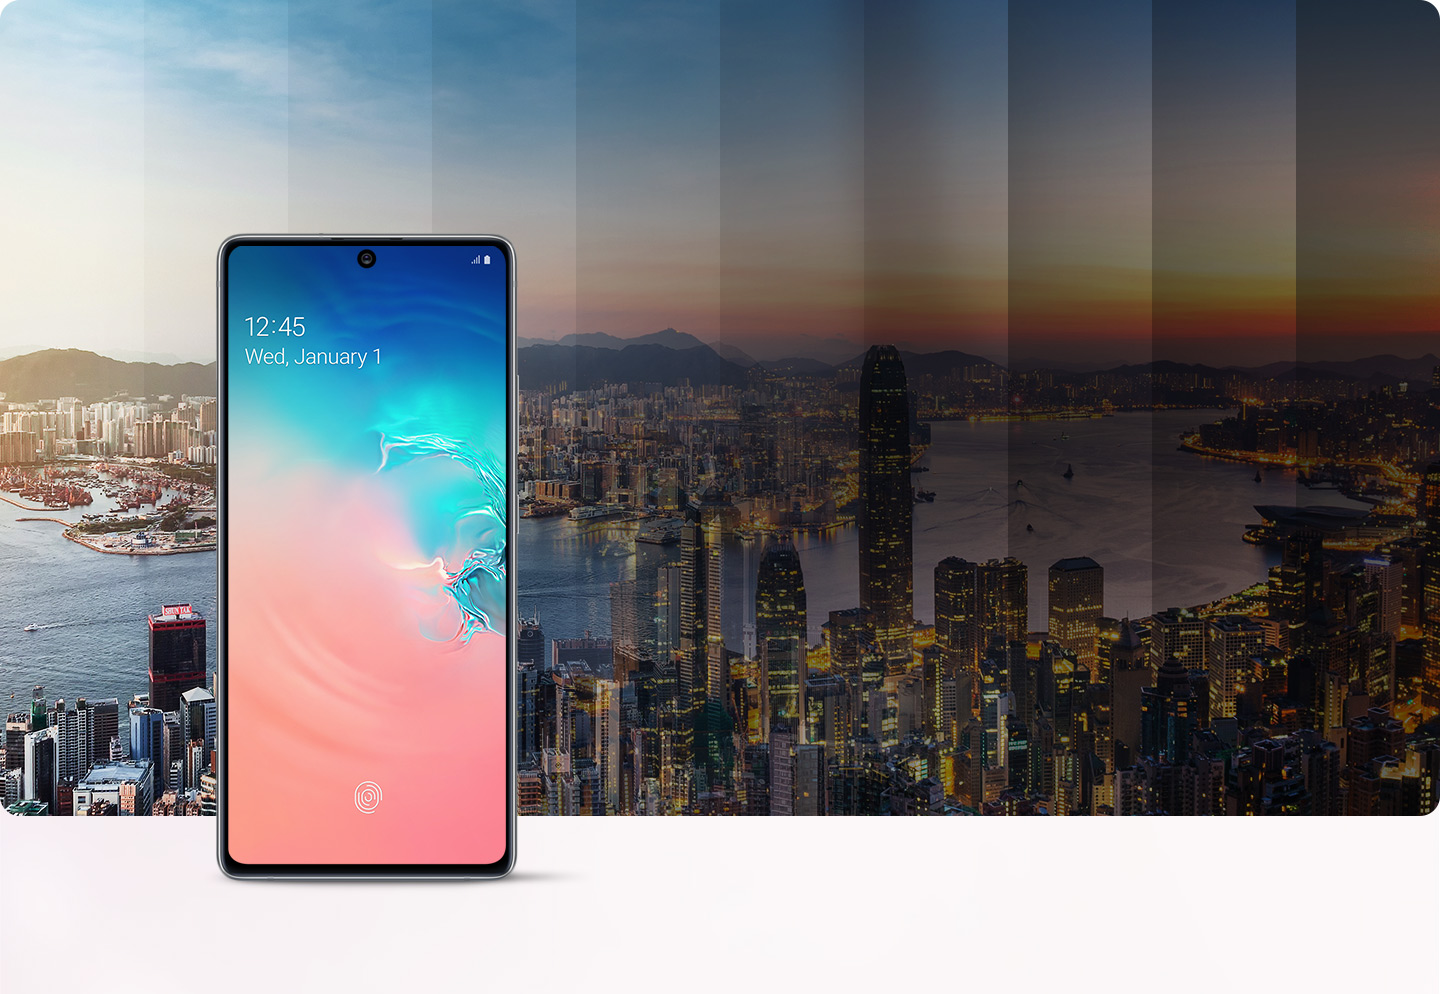 Galaxy S10 Lite - 4,500mAh battery - power to last 2-day